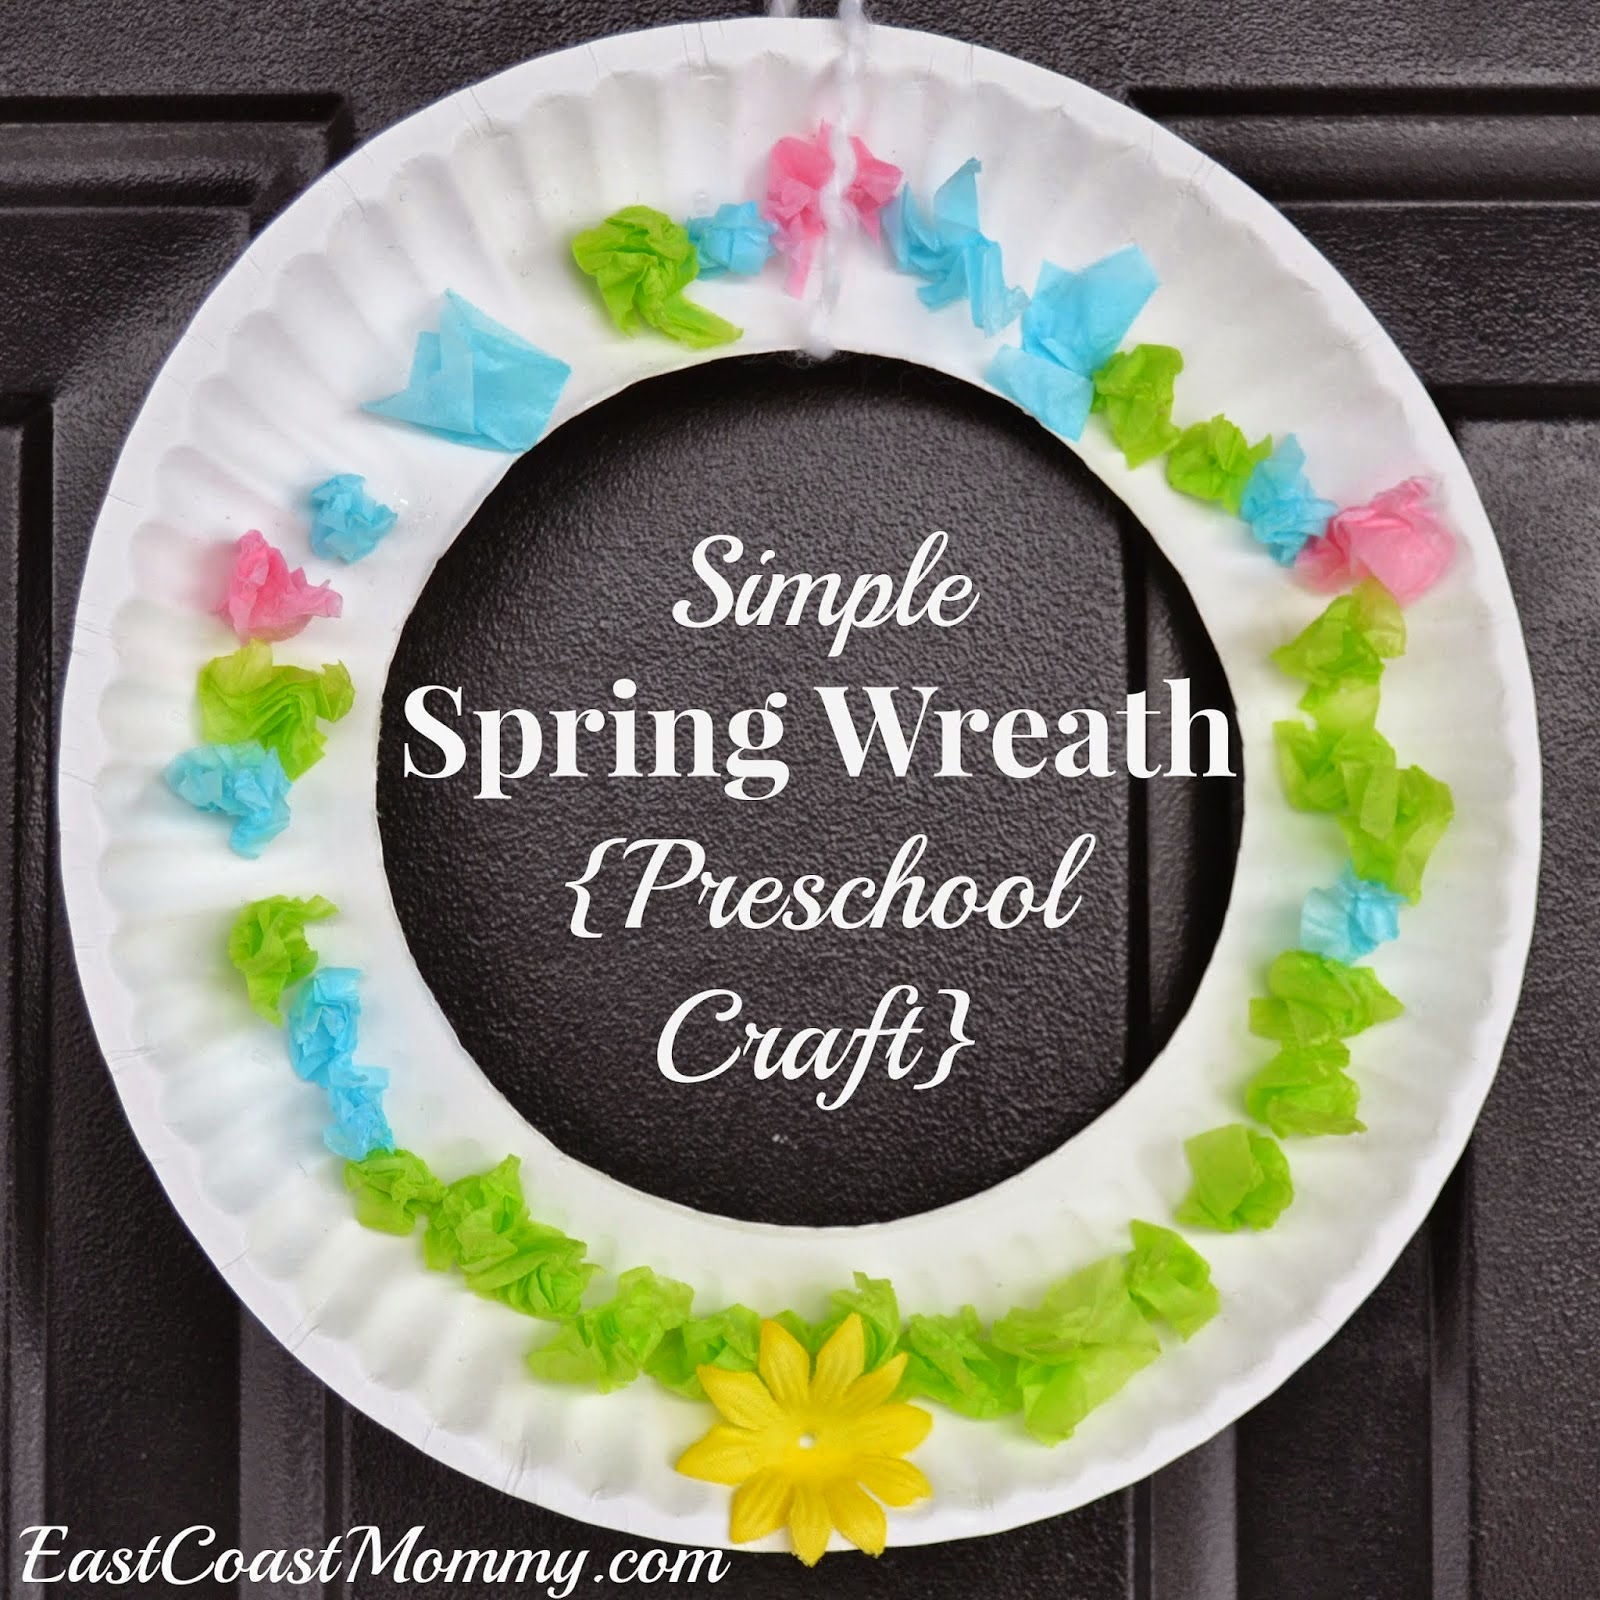 Featured 5 Spring Projects: East Coast Mommy: 10 {Simple} Easter Crafts For Kids